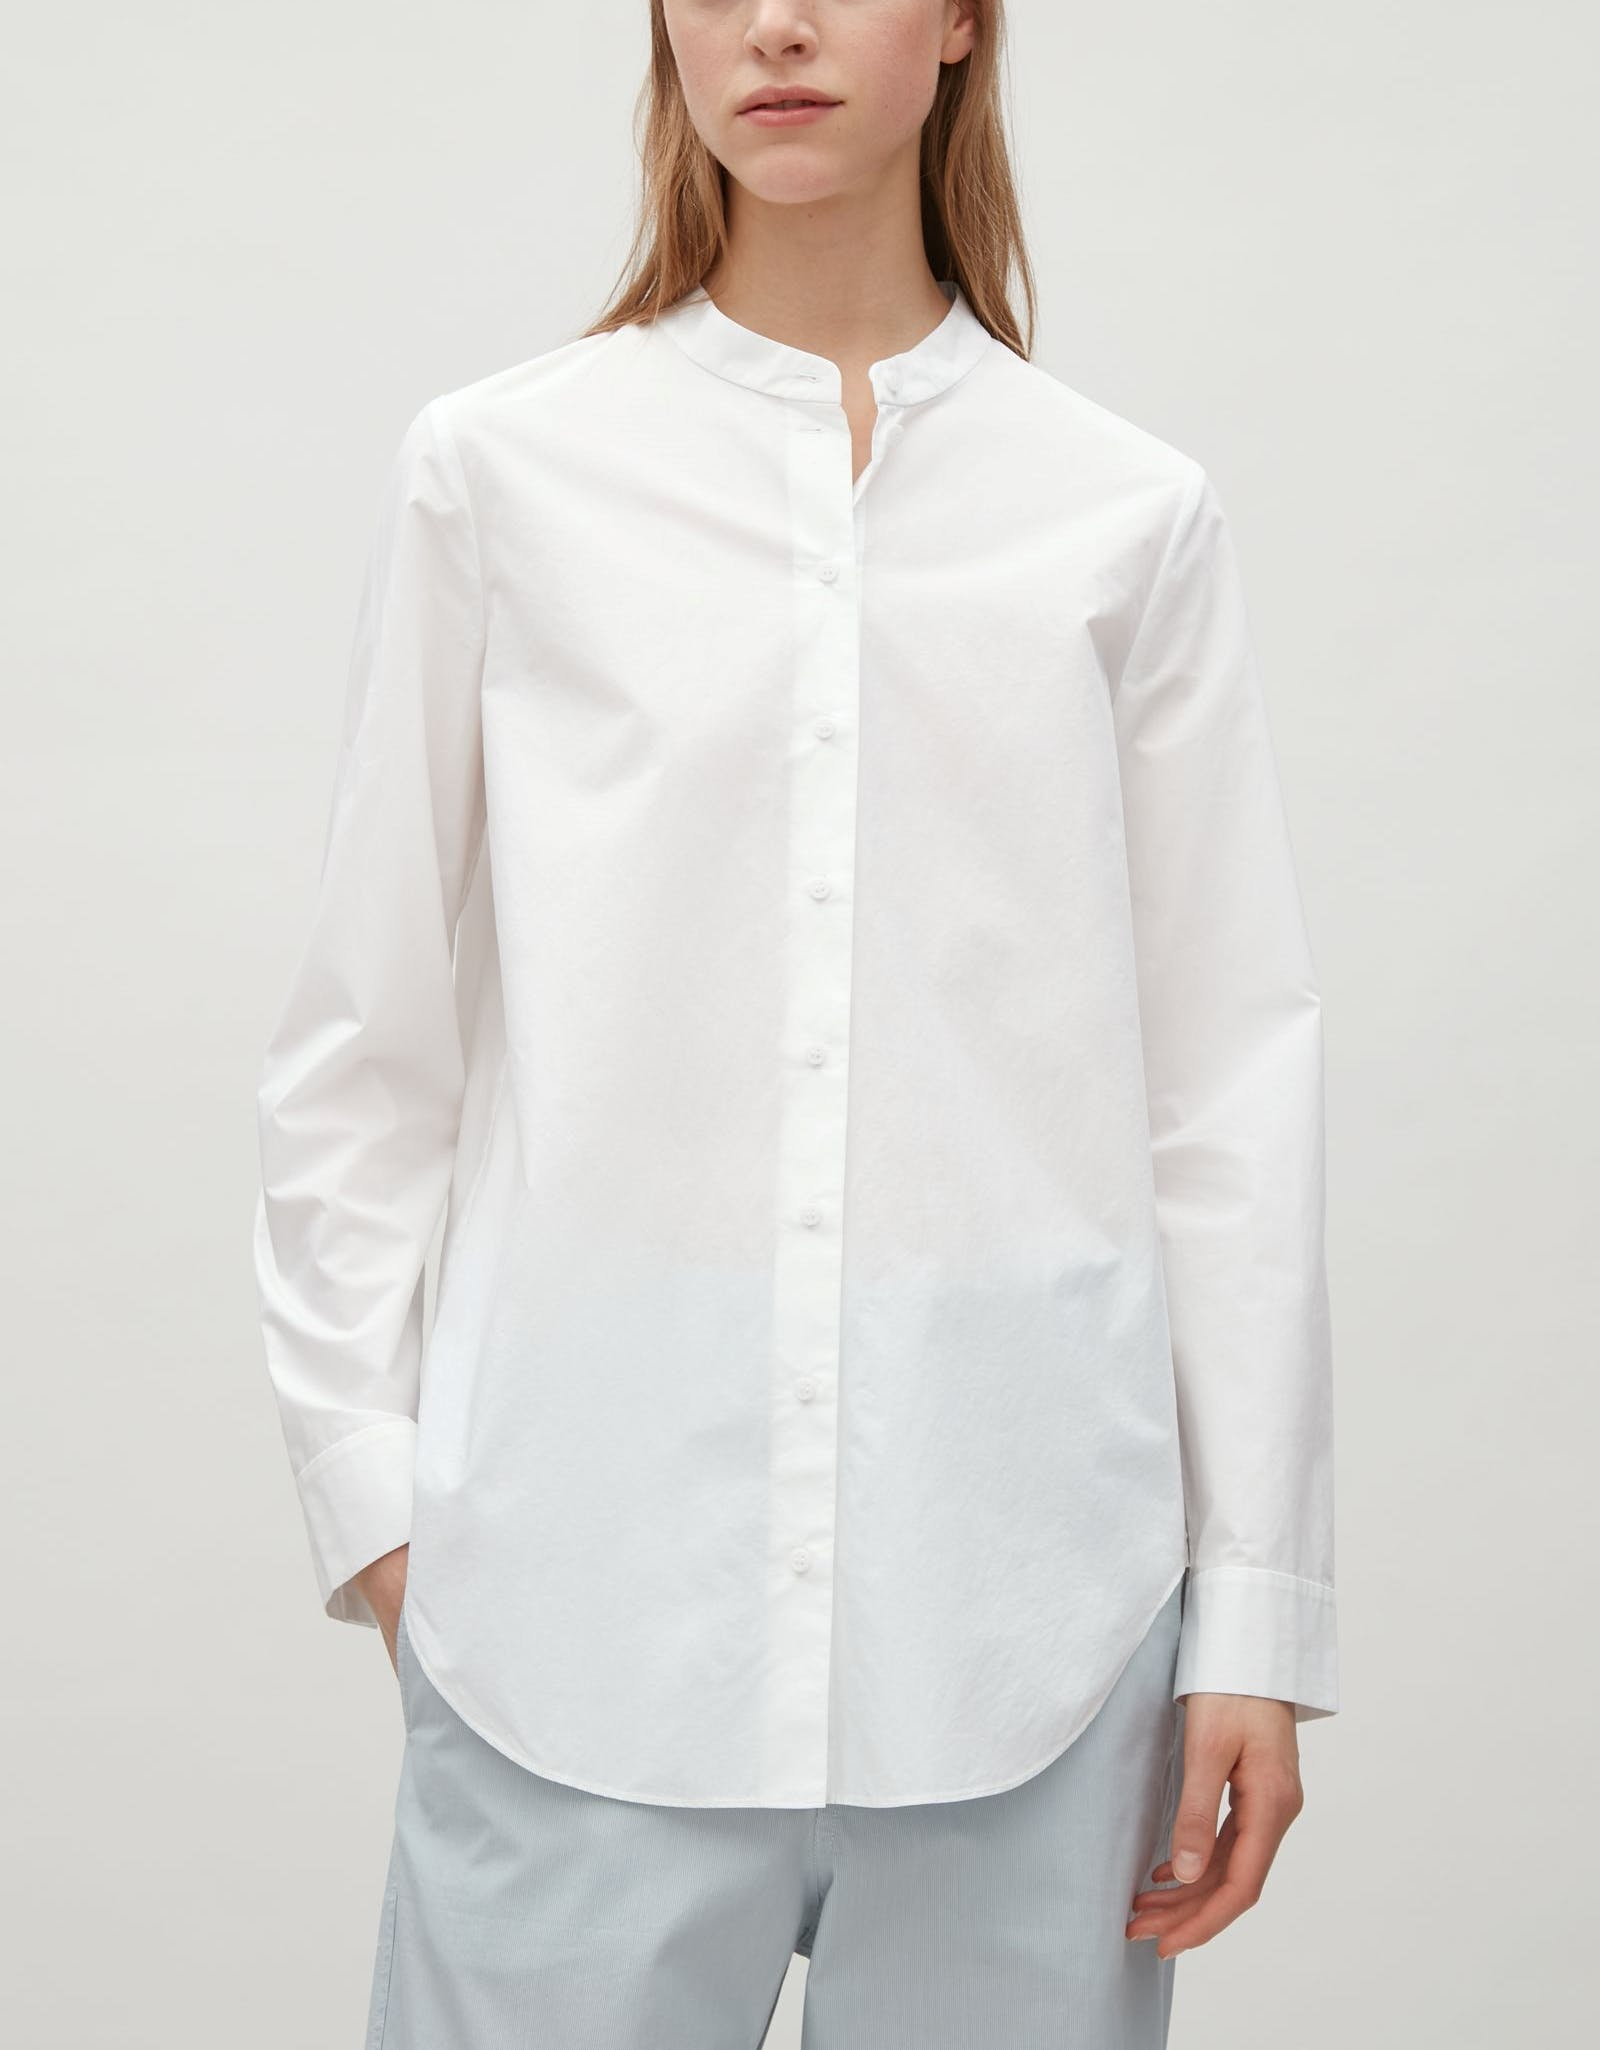 The Perfect White Shirt for Summer - PureWow